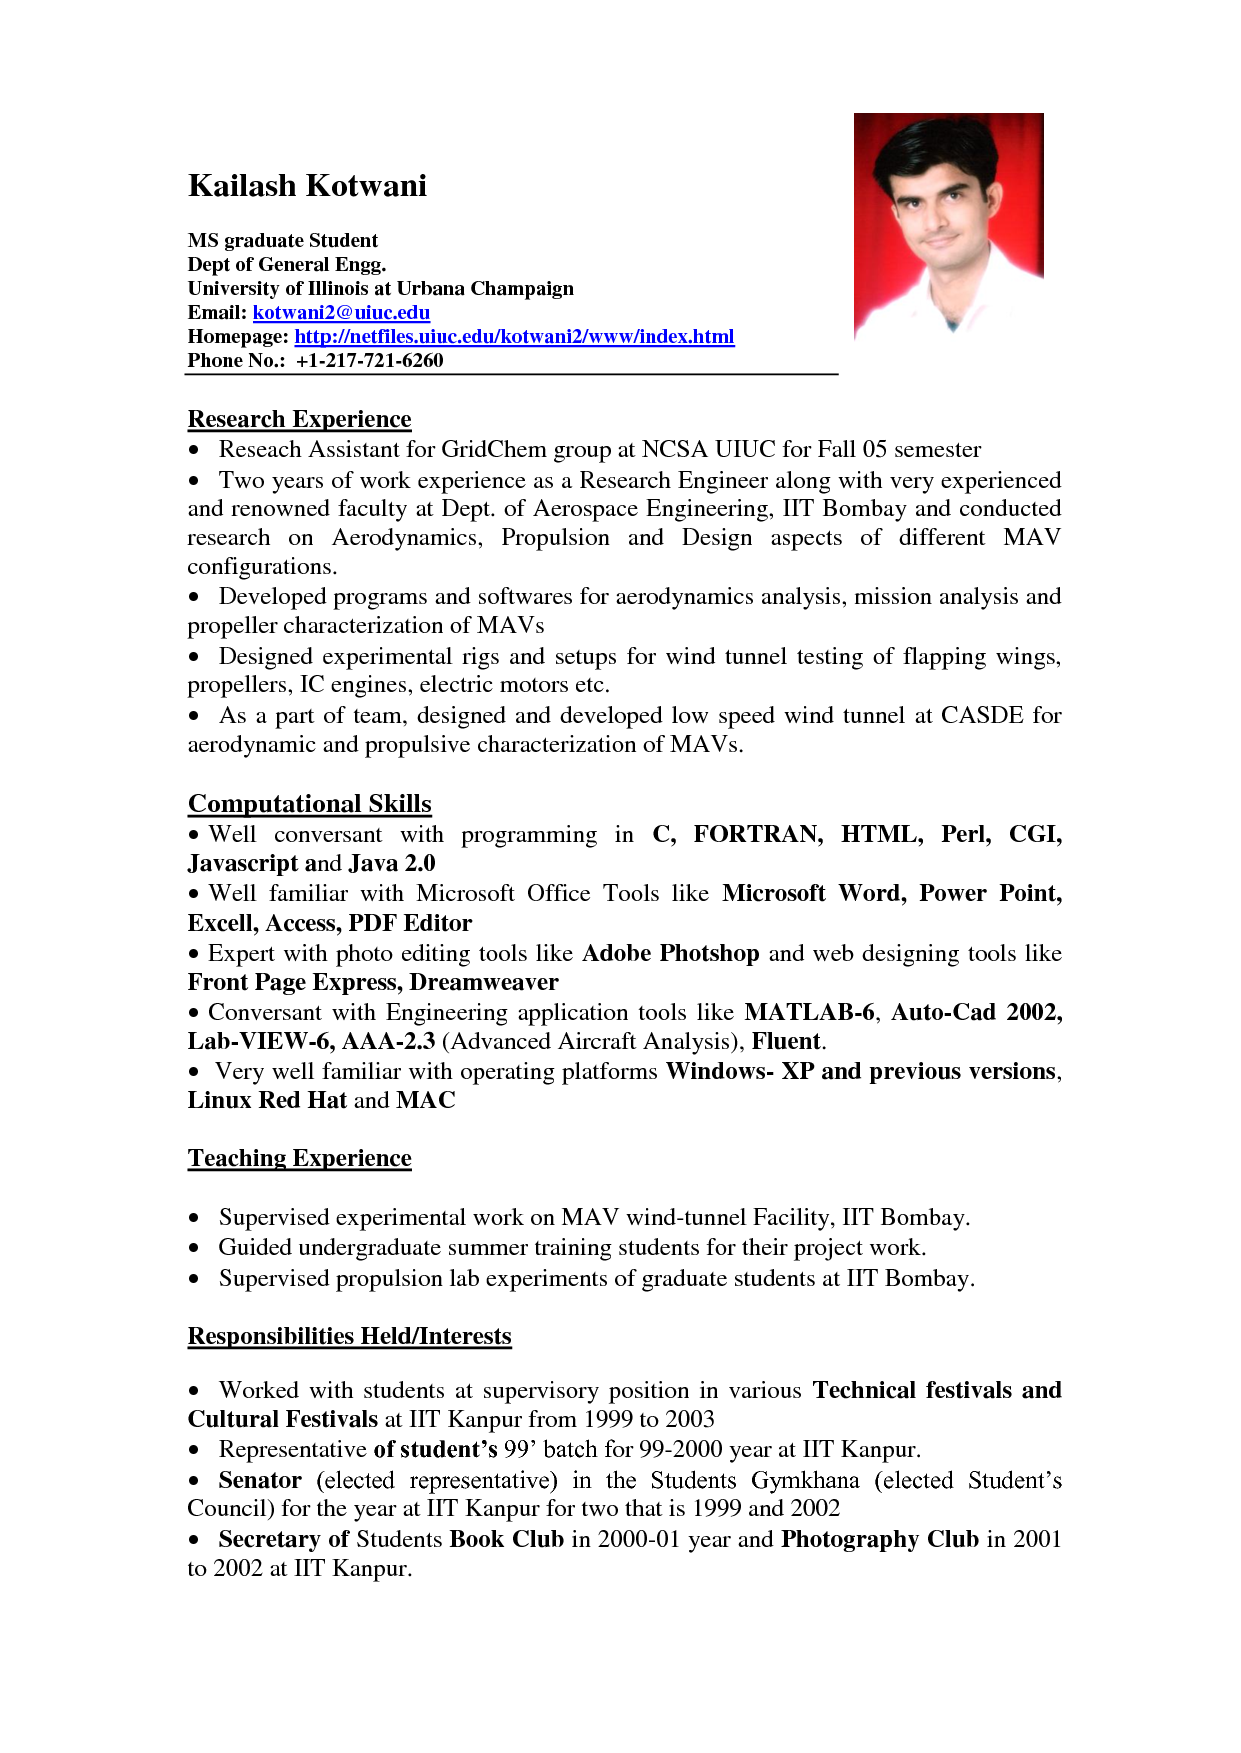 Delightful High School Student Resume Examples No Work Experience No Work Experience  Resume Content. How To Write A Resume Resume . Idea Work Experience Resume Examples